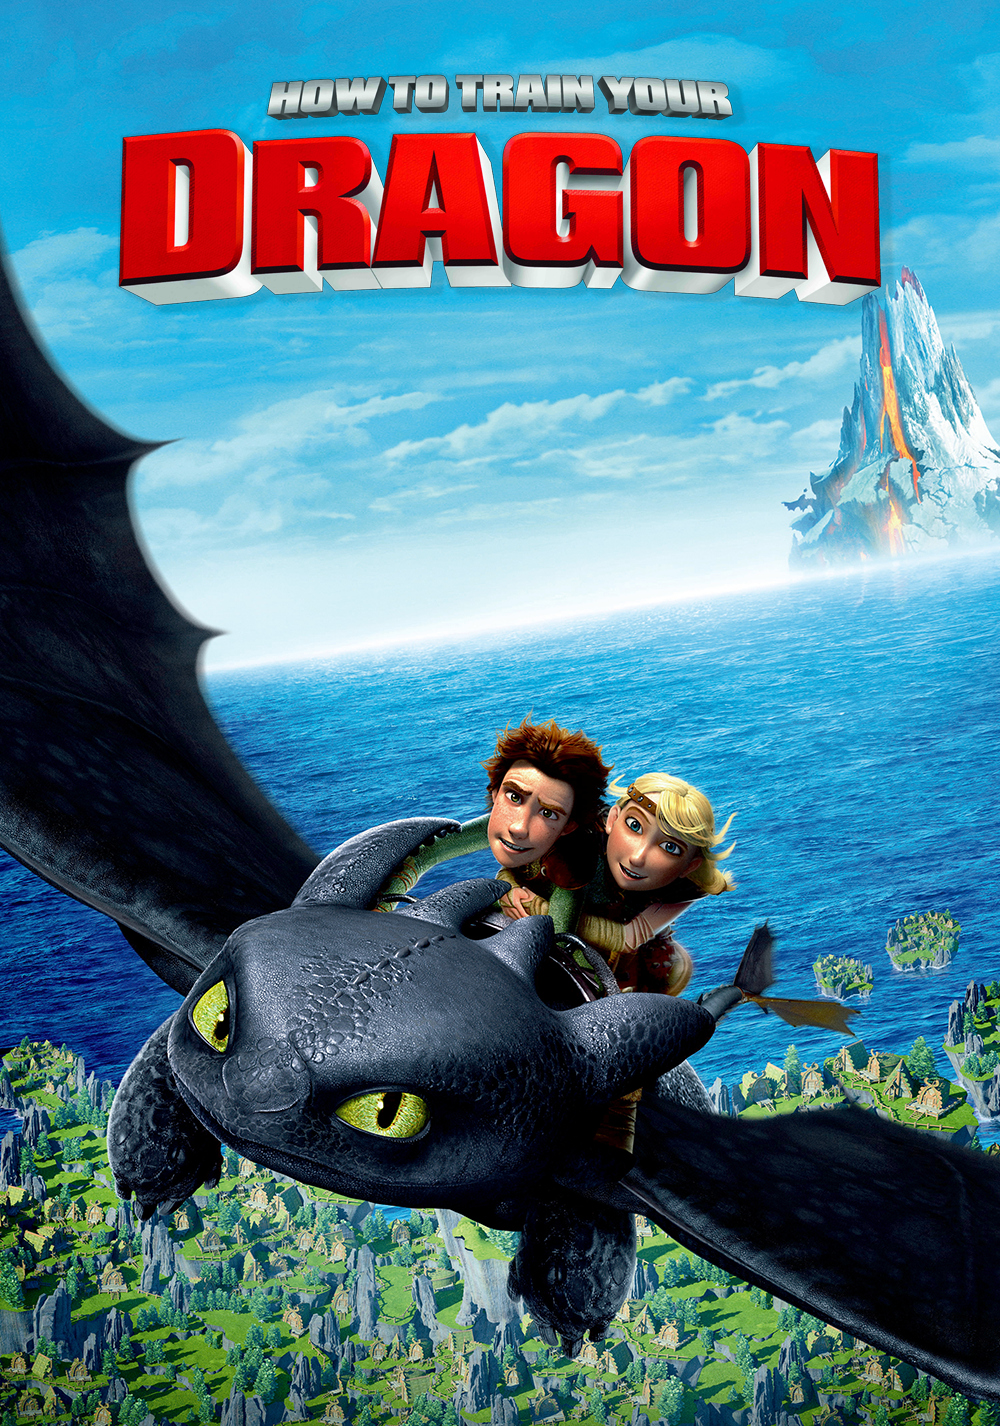 Free movie how to train your dragon the newtown theatre free movie how to train your dragon ccuart Gallery